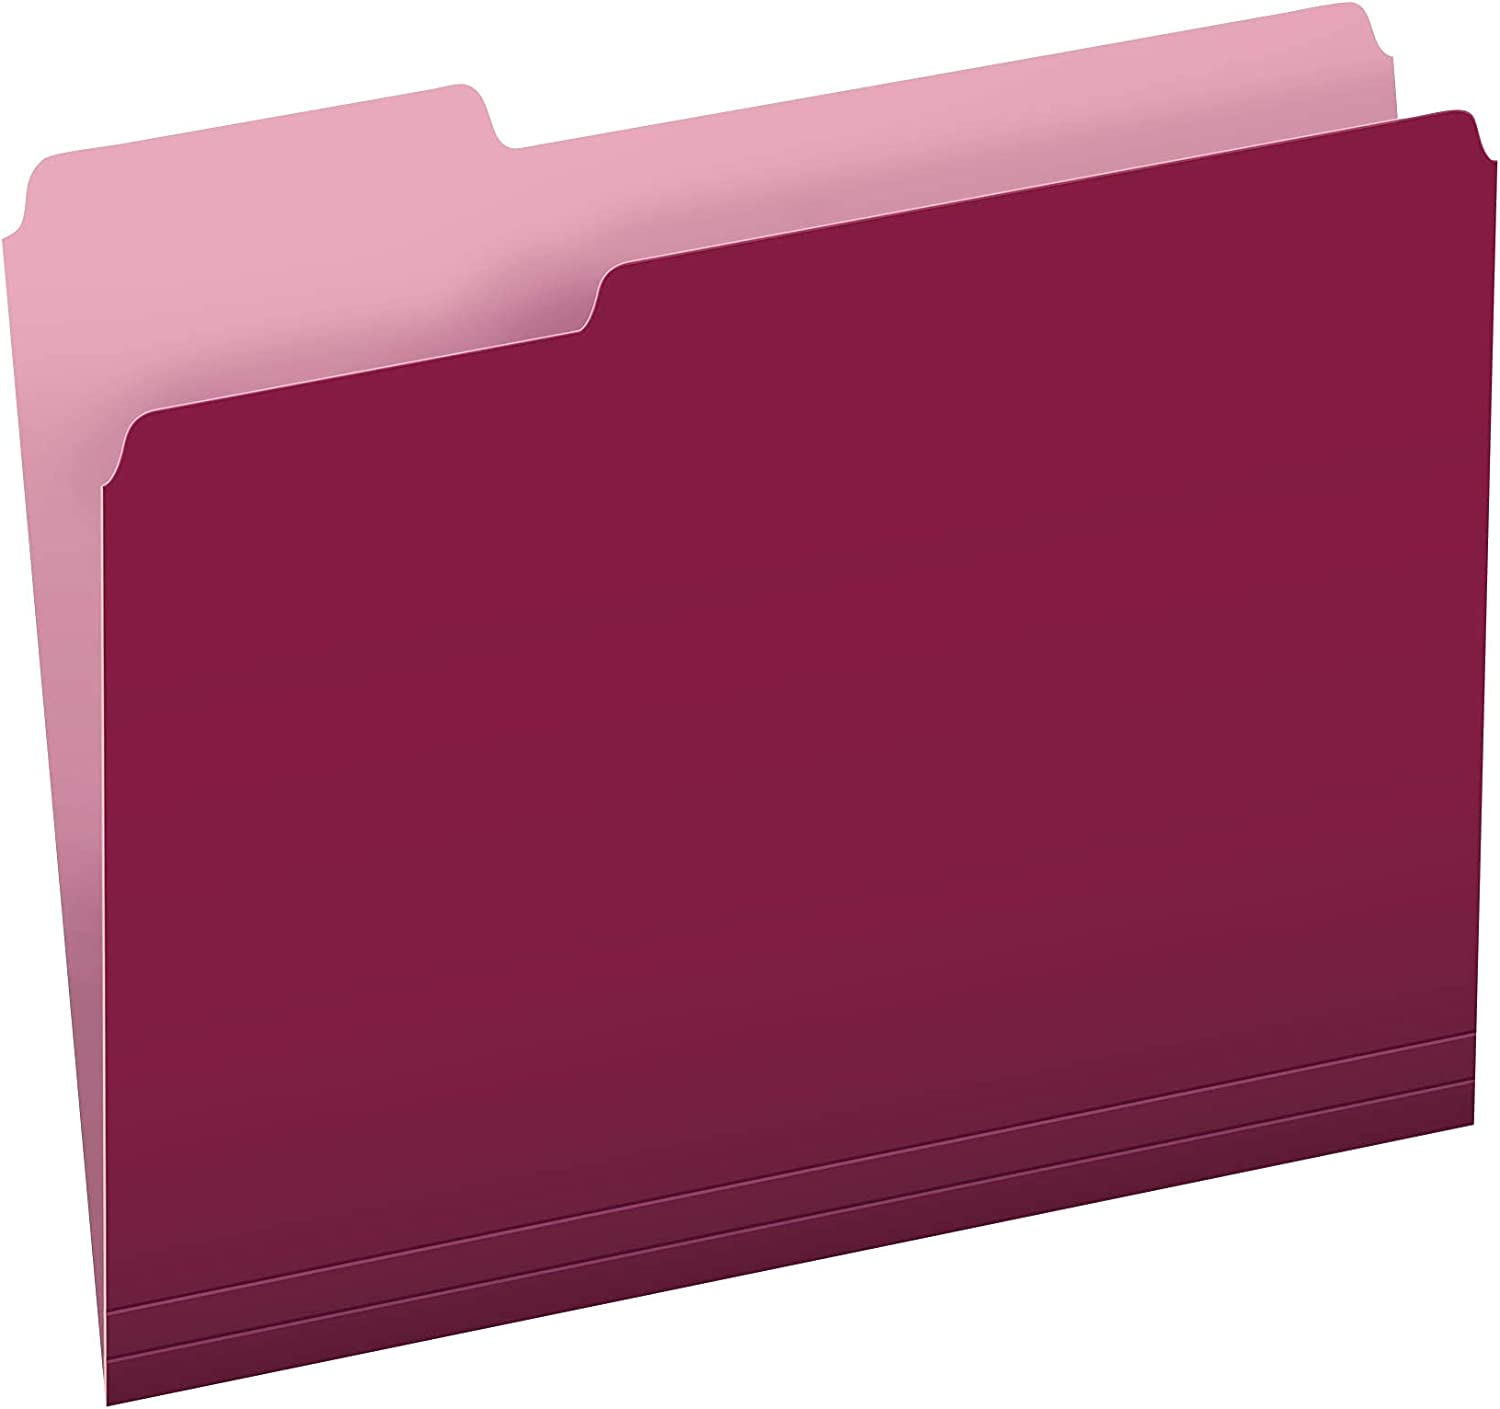 Two-Tone Color File Folders Letter Size 1 Burgundy 100 Max 73% OFF 3 Cut ! Super beauty product restock quality top!